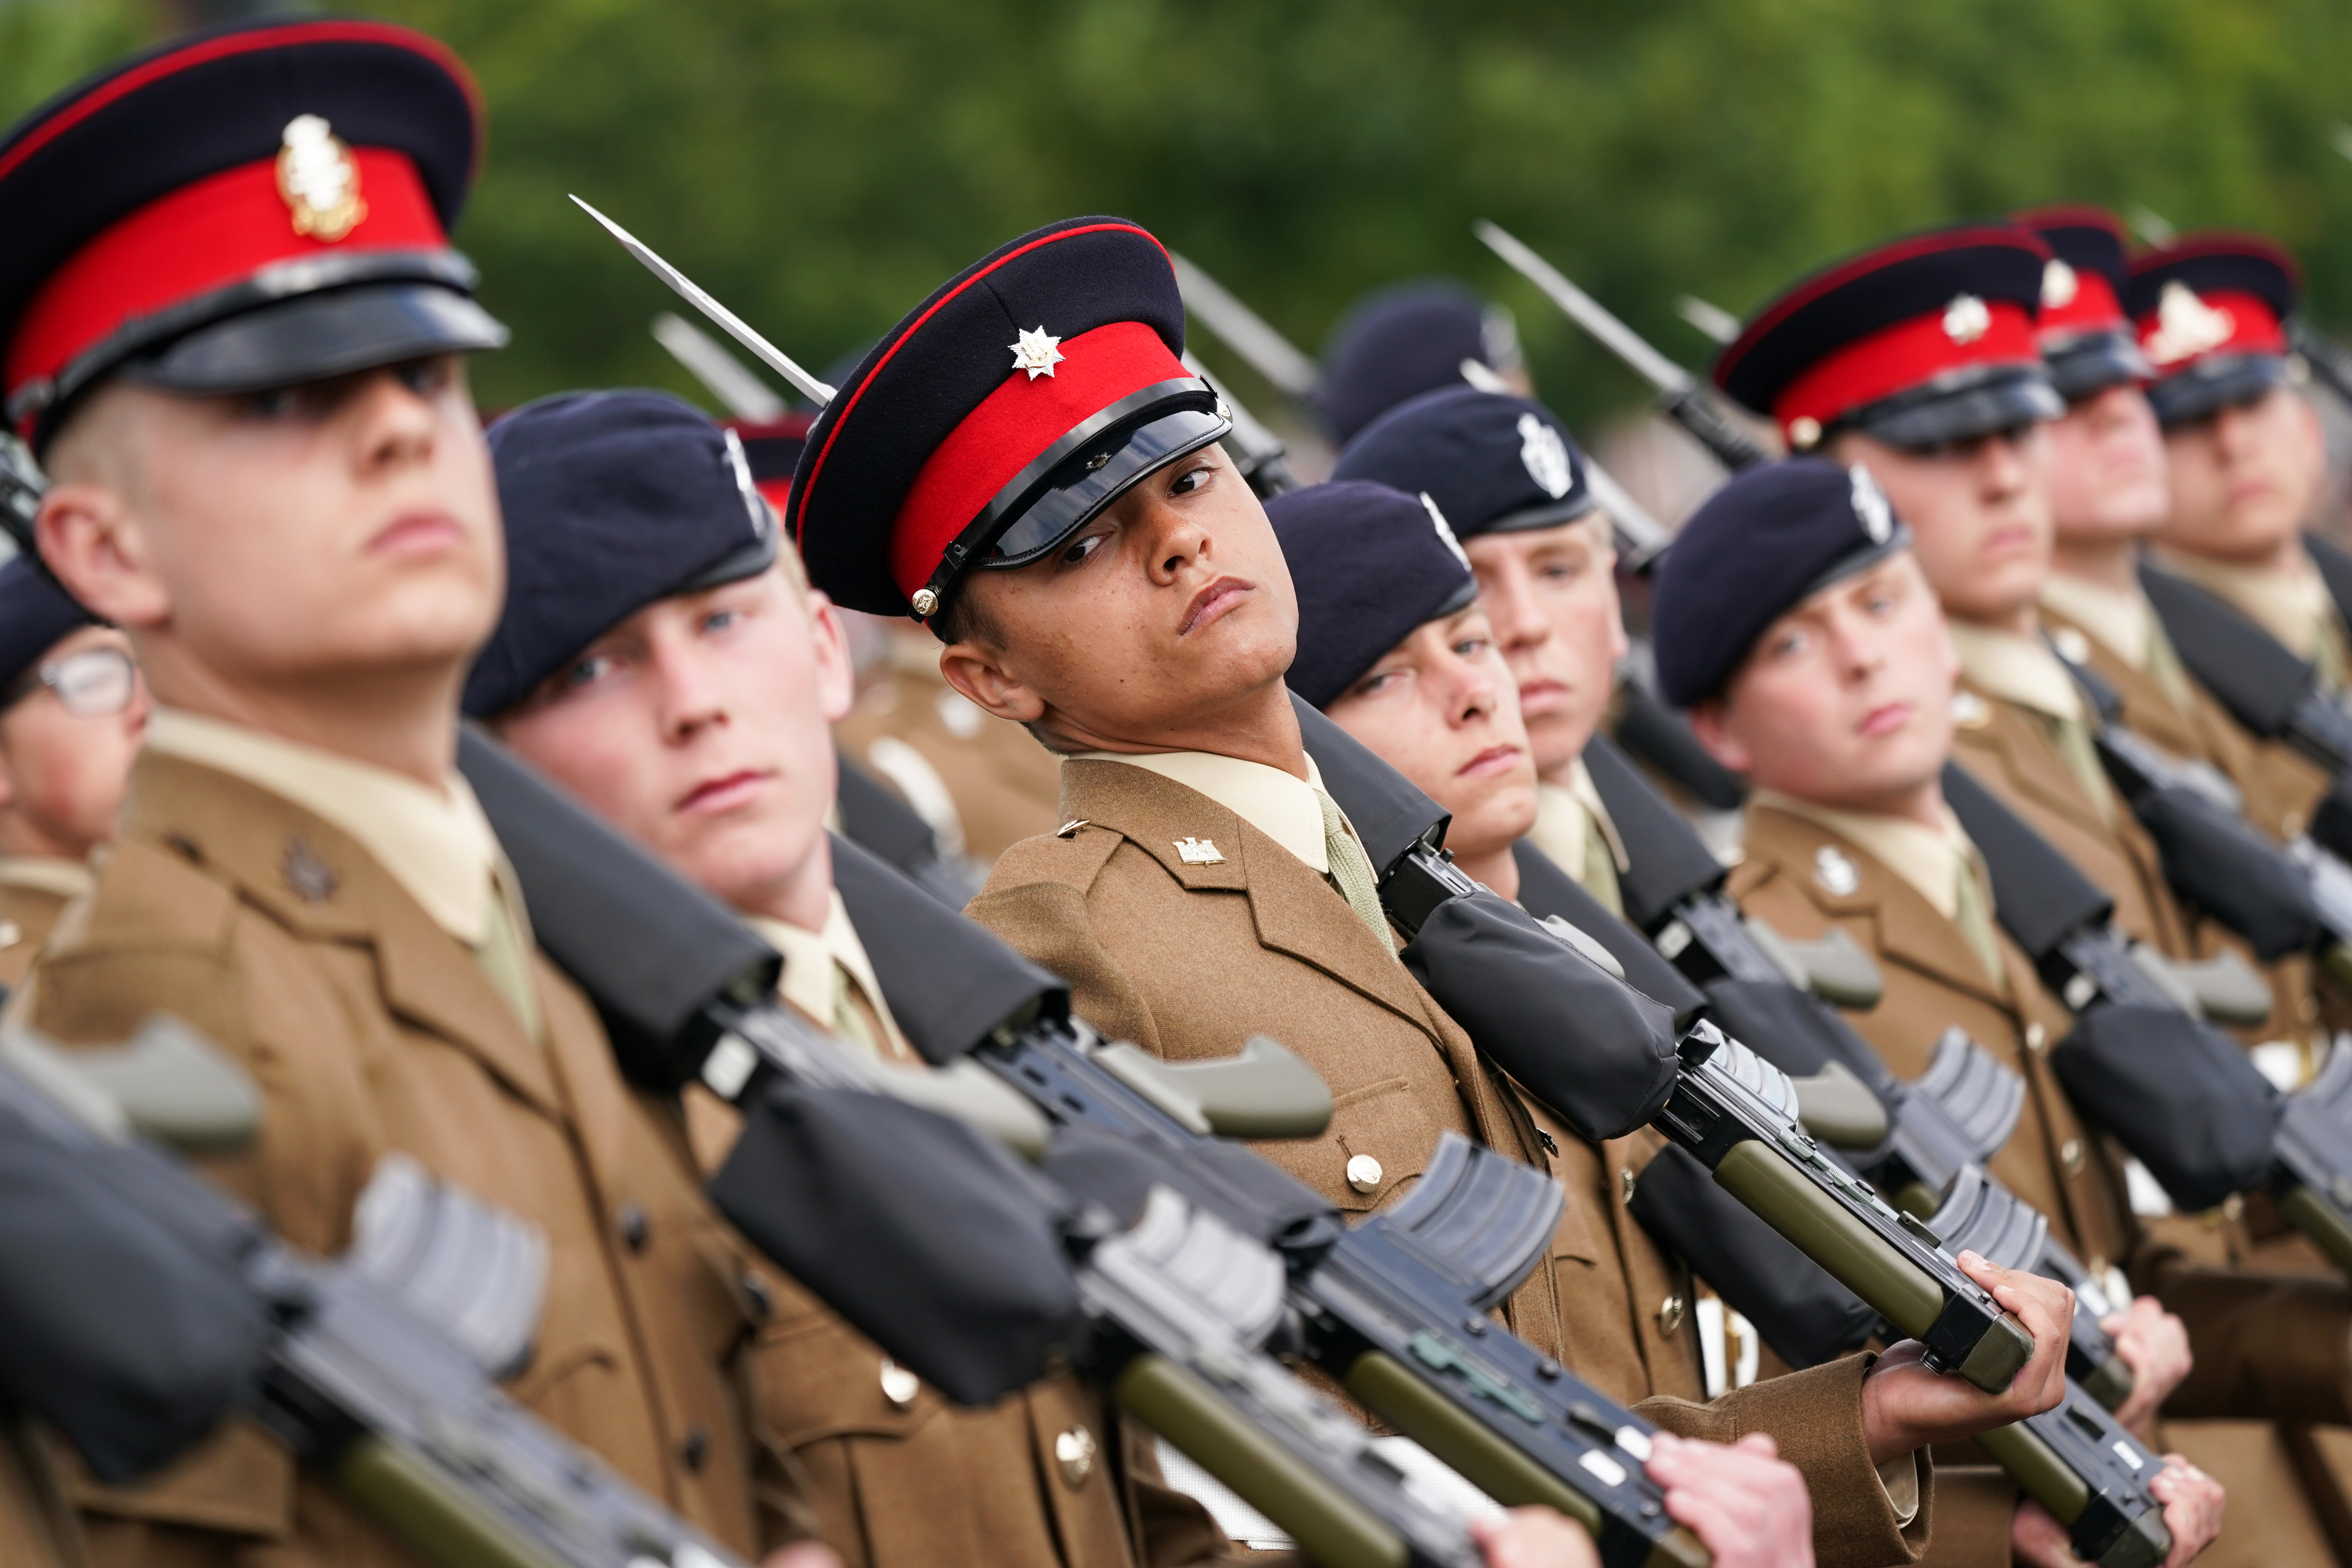 <p>HARROGATE, ENGLAND - AUGUST 05: Junior Soldiers from the Army Foundation College in Harrogate take part in their graduation parade on August 05, 2021 in Harrogate, England. The graduation parade marked the culmination up to 12 months of military training for over 700 of the British Army's newest future soldiers. Junior Soldiers from the Army Foundation College Harrogate completed initial soldier training that includes military skills, leadership training, physical development lessons, teamwork, and the Duke of Edinburgh's award. Family, friends and guests of the junior soldiers attended the parade, which was presided over by Lieutenant General Ian Cave CB, Commander Home Command and Standing Joint Commander (UK). The proceedings included a parachute display, fly past, music from a military band and the first use of Captain Sir Tom Moore Walk, a memorial walkway. (Photo by Ian Forsyth/Getty Images)</p>